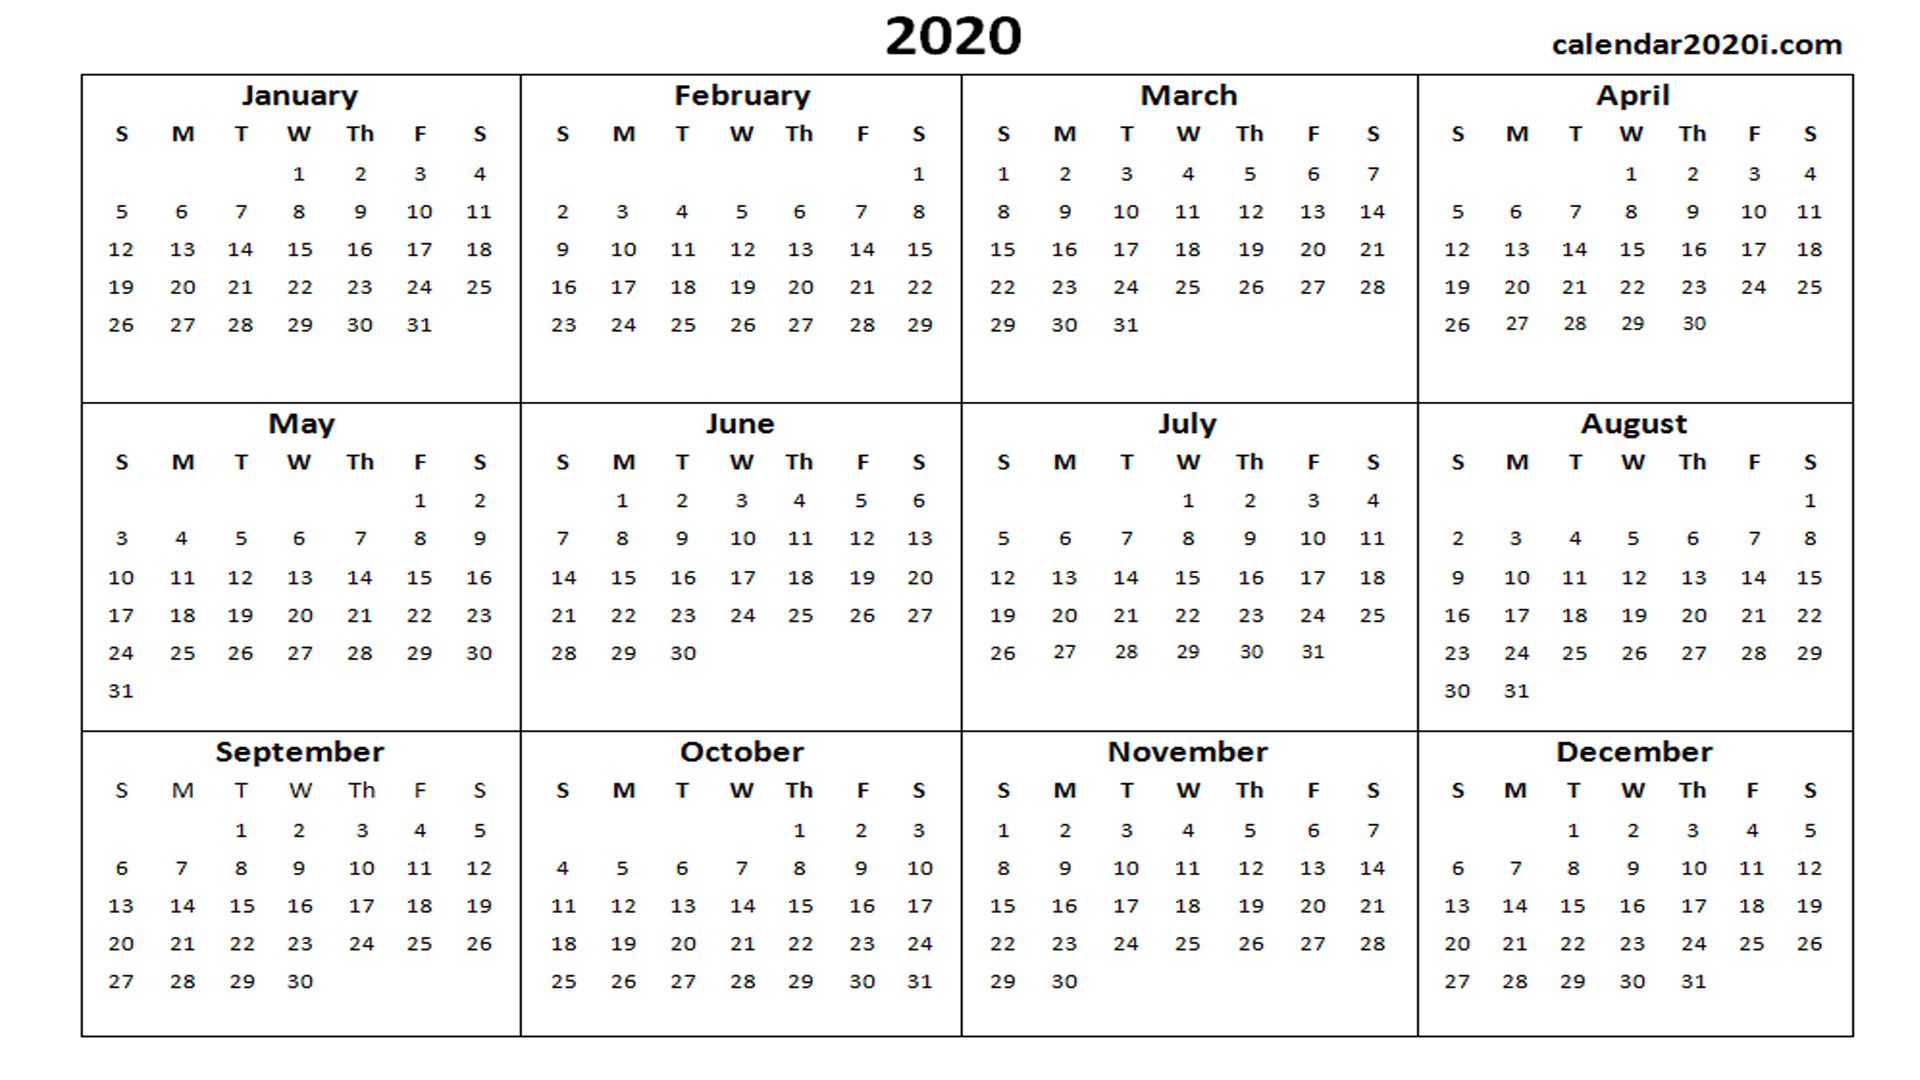 2020 Calendar Printable Template Holidays, Word, Excel, Pdf within Printable 2020 Calander